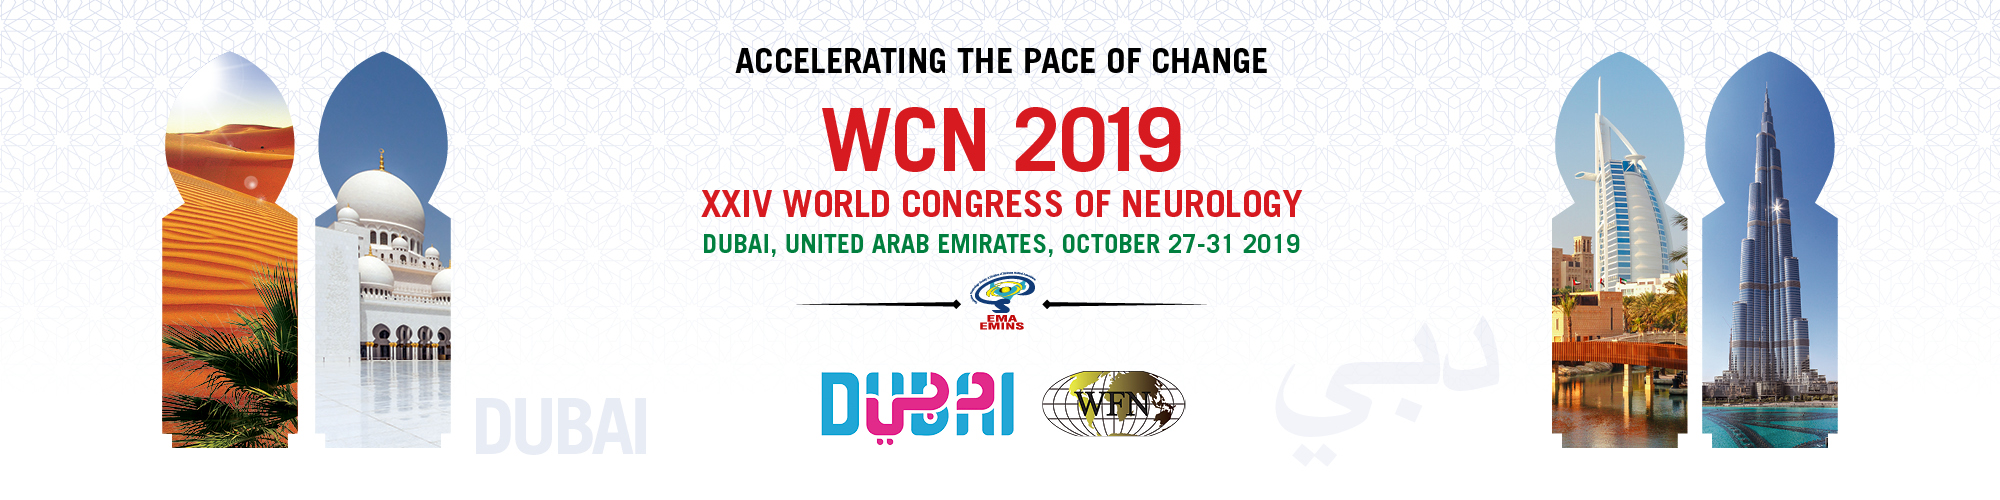 WCN 2019 Banner 2000x500